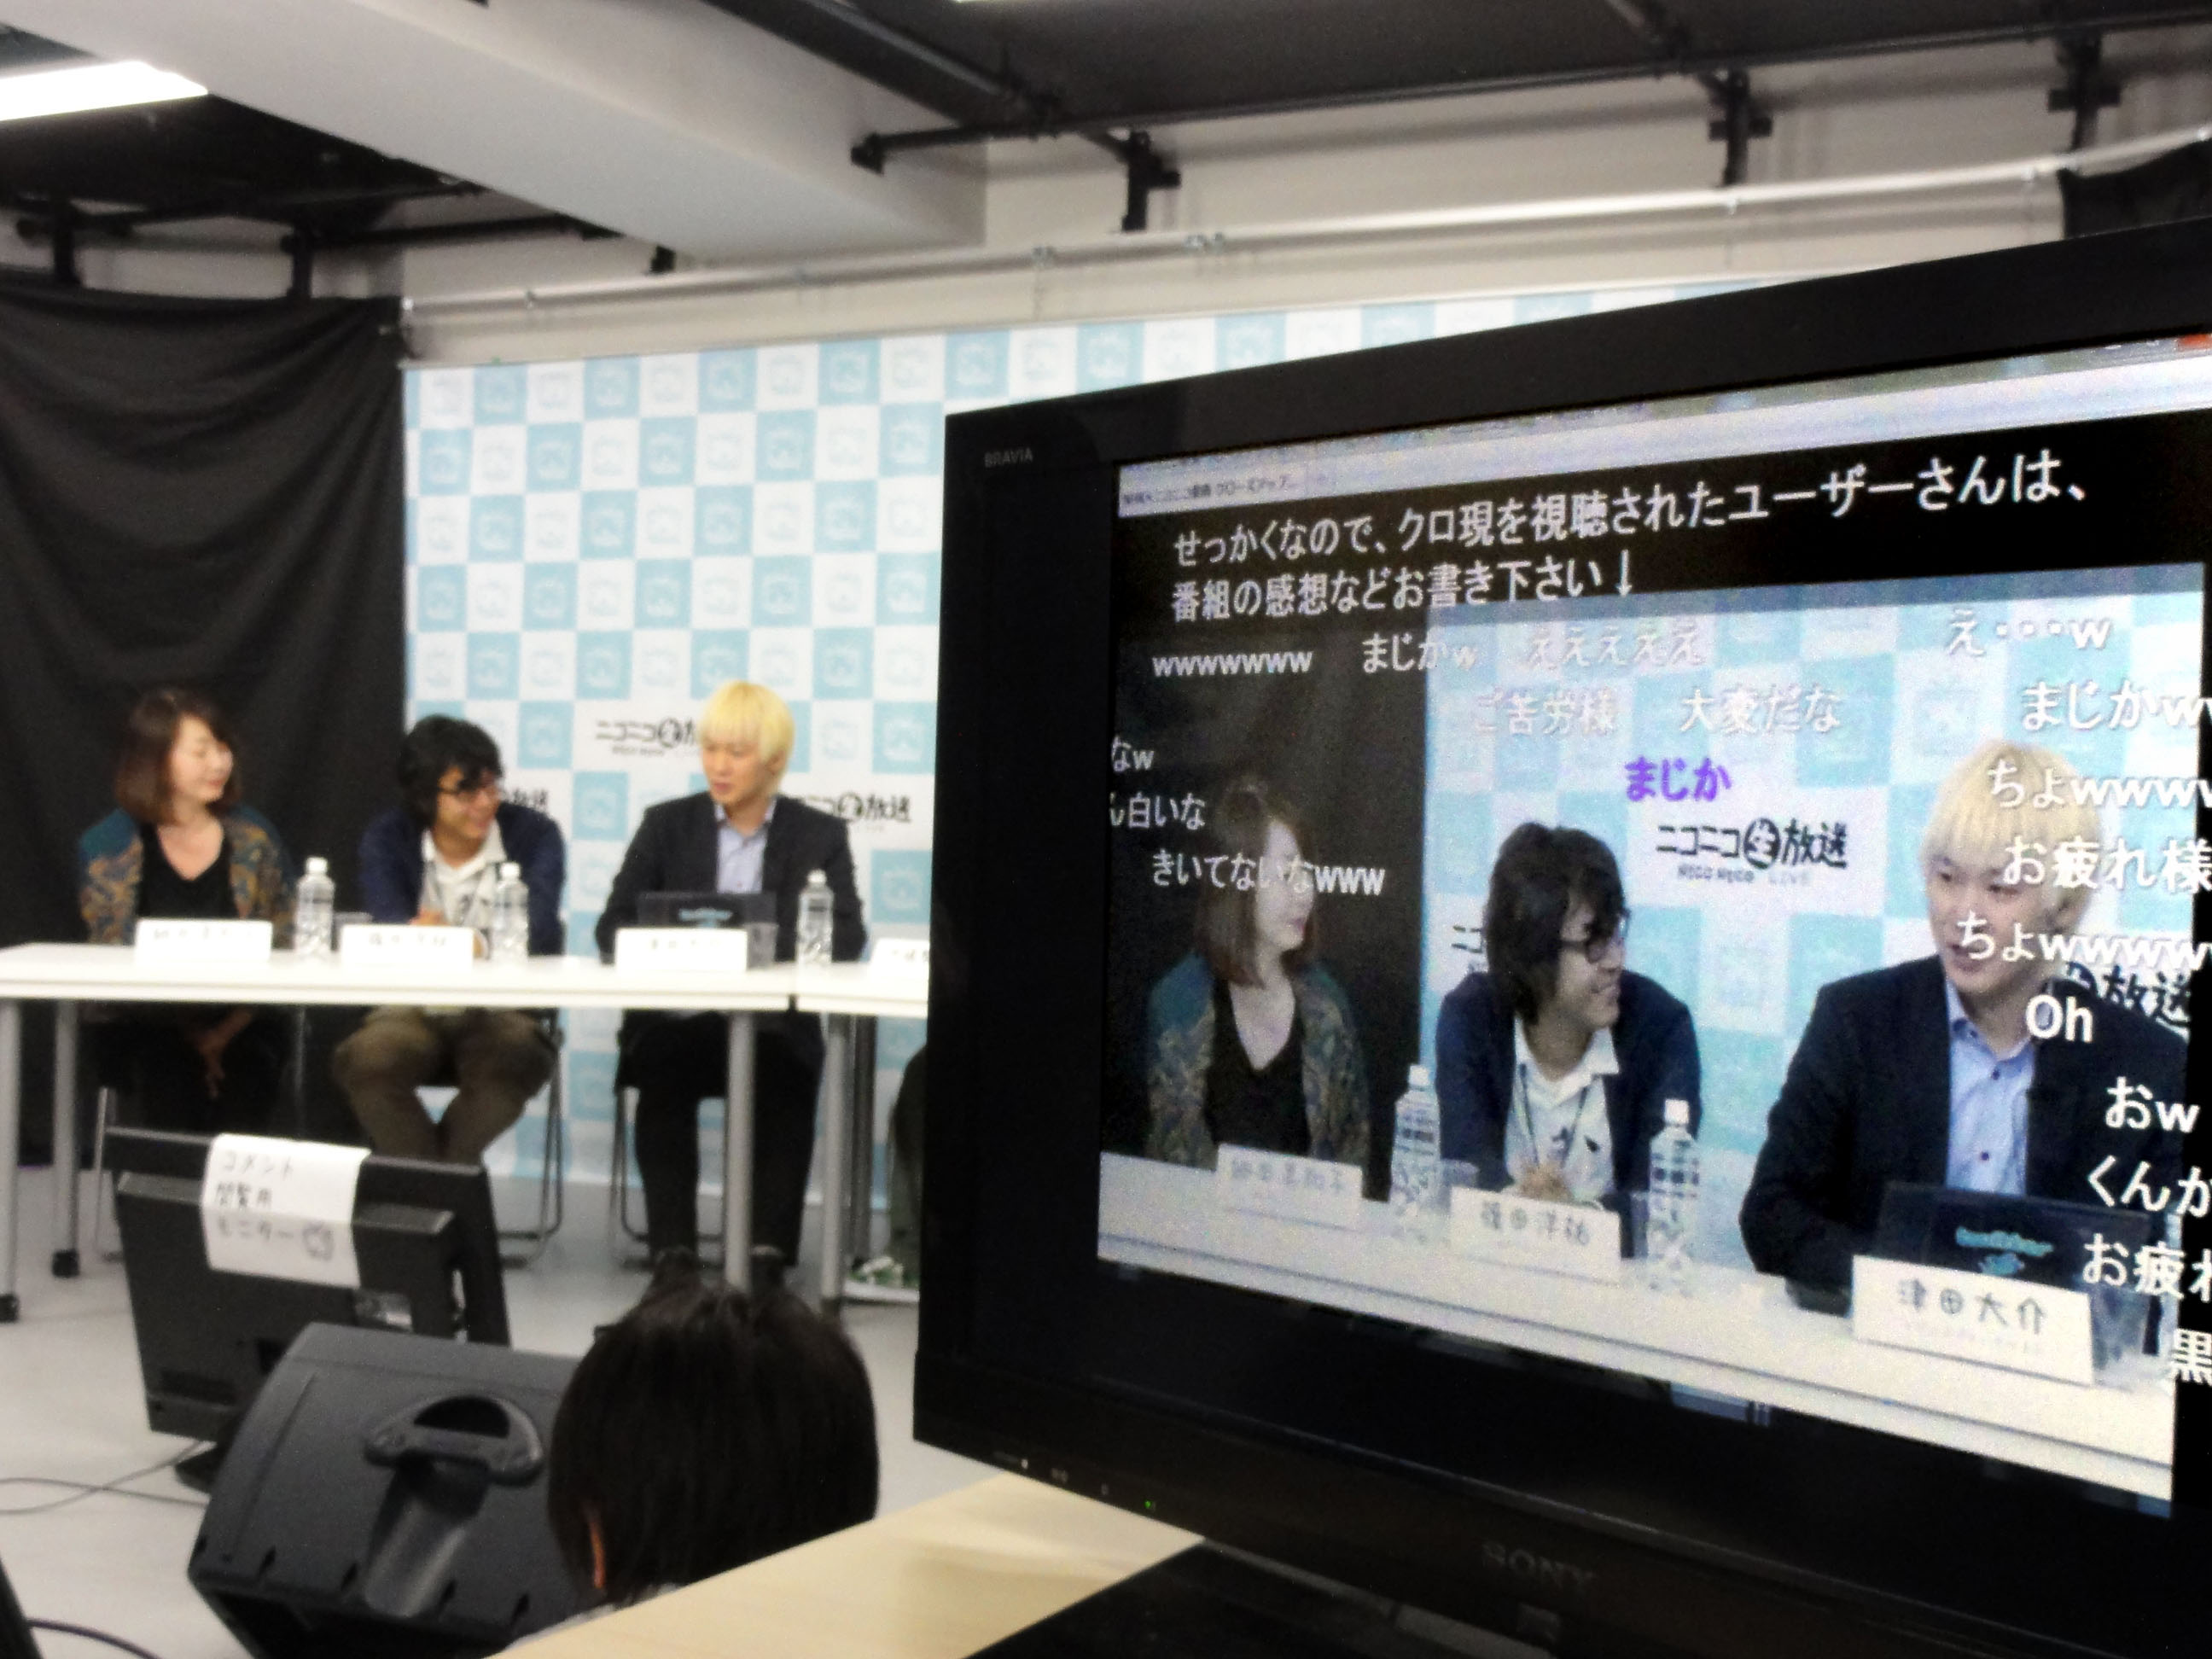 Keeping them honest: Nico Nico Douga hosts a live streaming program March 10 at its Harajuku studio in Tokyo. The program was a part of collaborative project between the Internet media site and NHK that day. | KAZUAKI NAGATA PHOTO